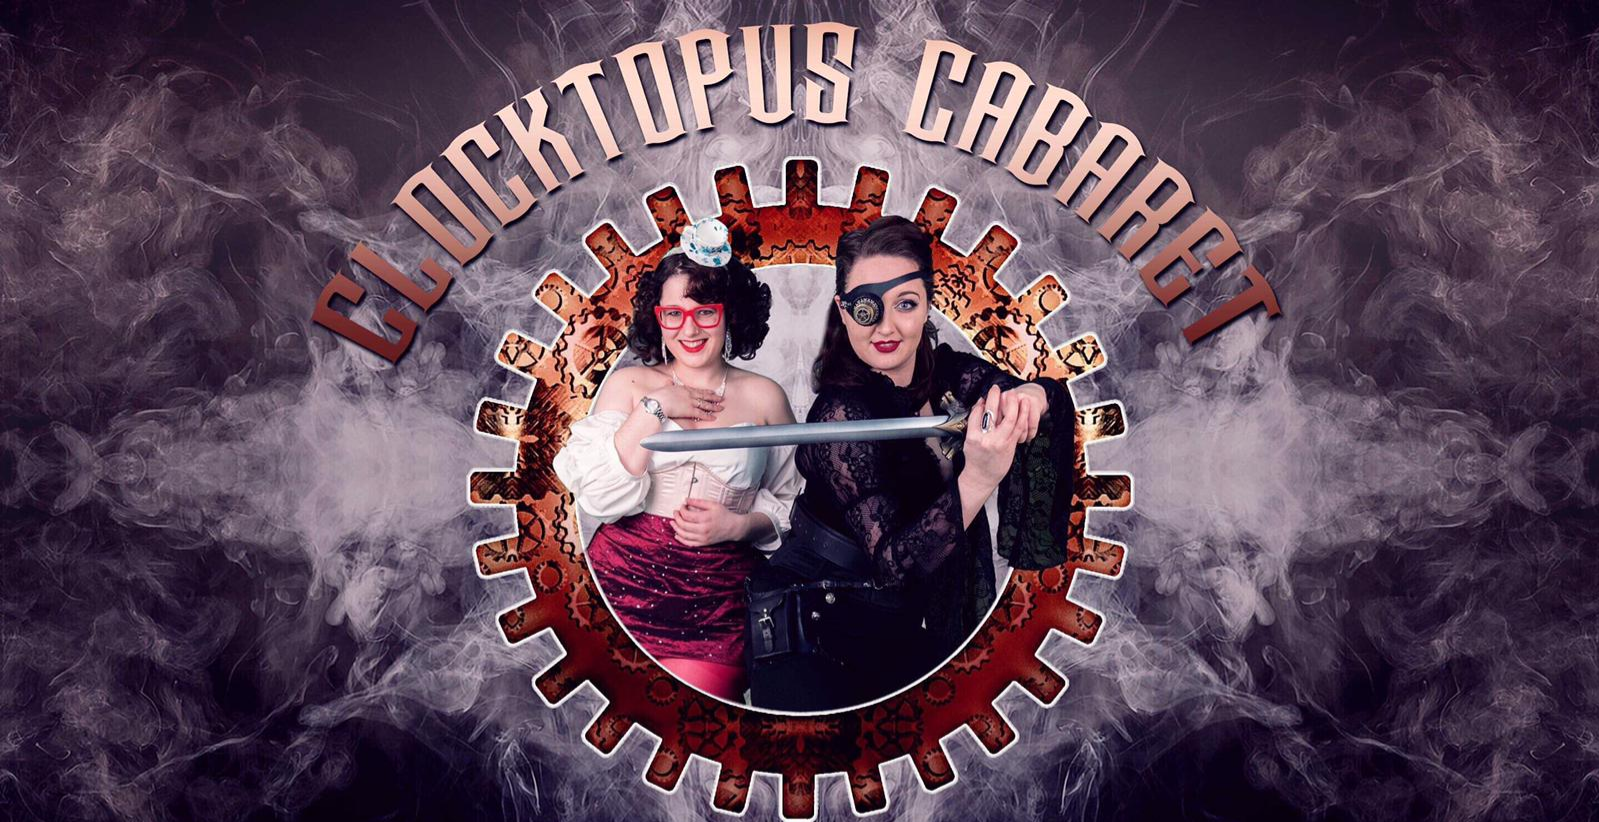 Clocktopus Cabaret - The Next Chapter